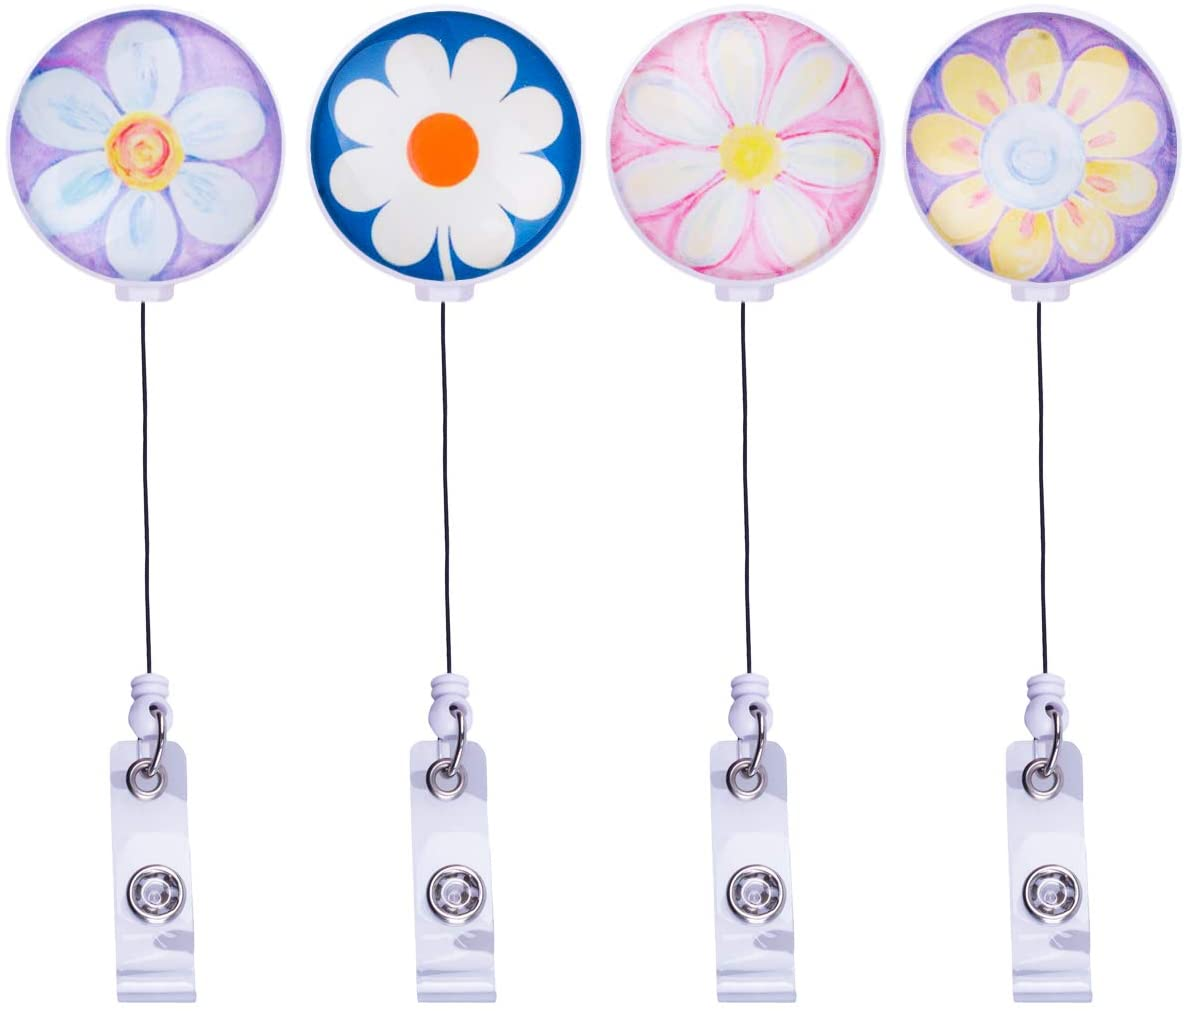 WOWCASE 4 Pack HD Crystal Glass Retractable Badge Holder, ID Card Badge Reel with Print Pattern 360°Alligator Swivel Badge Clip (Lucky Flower)